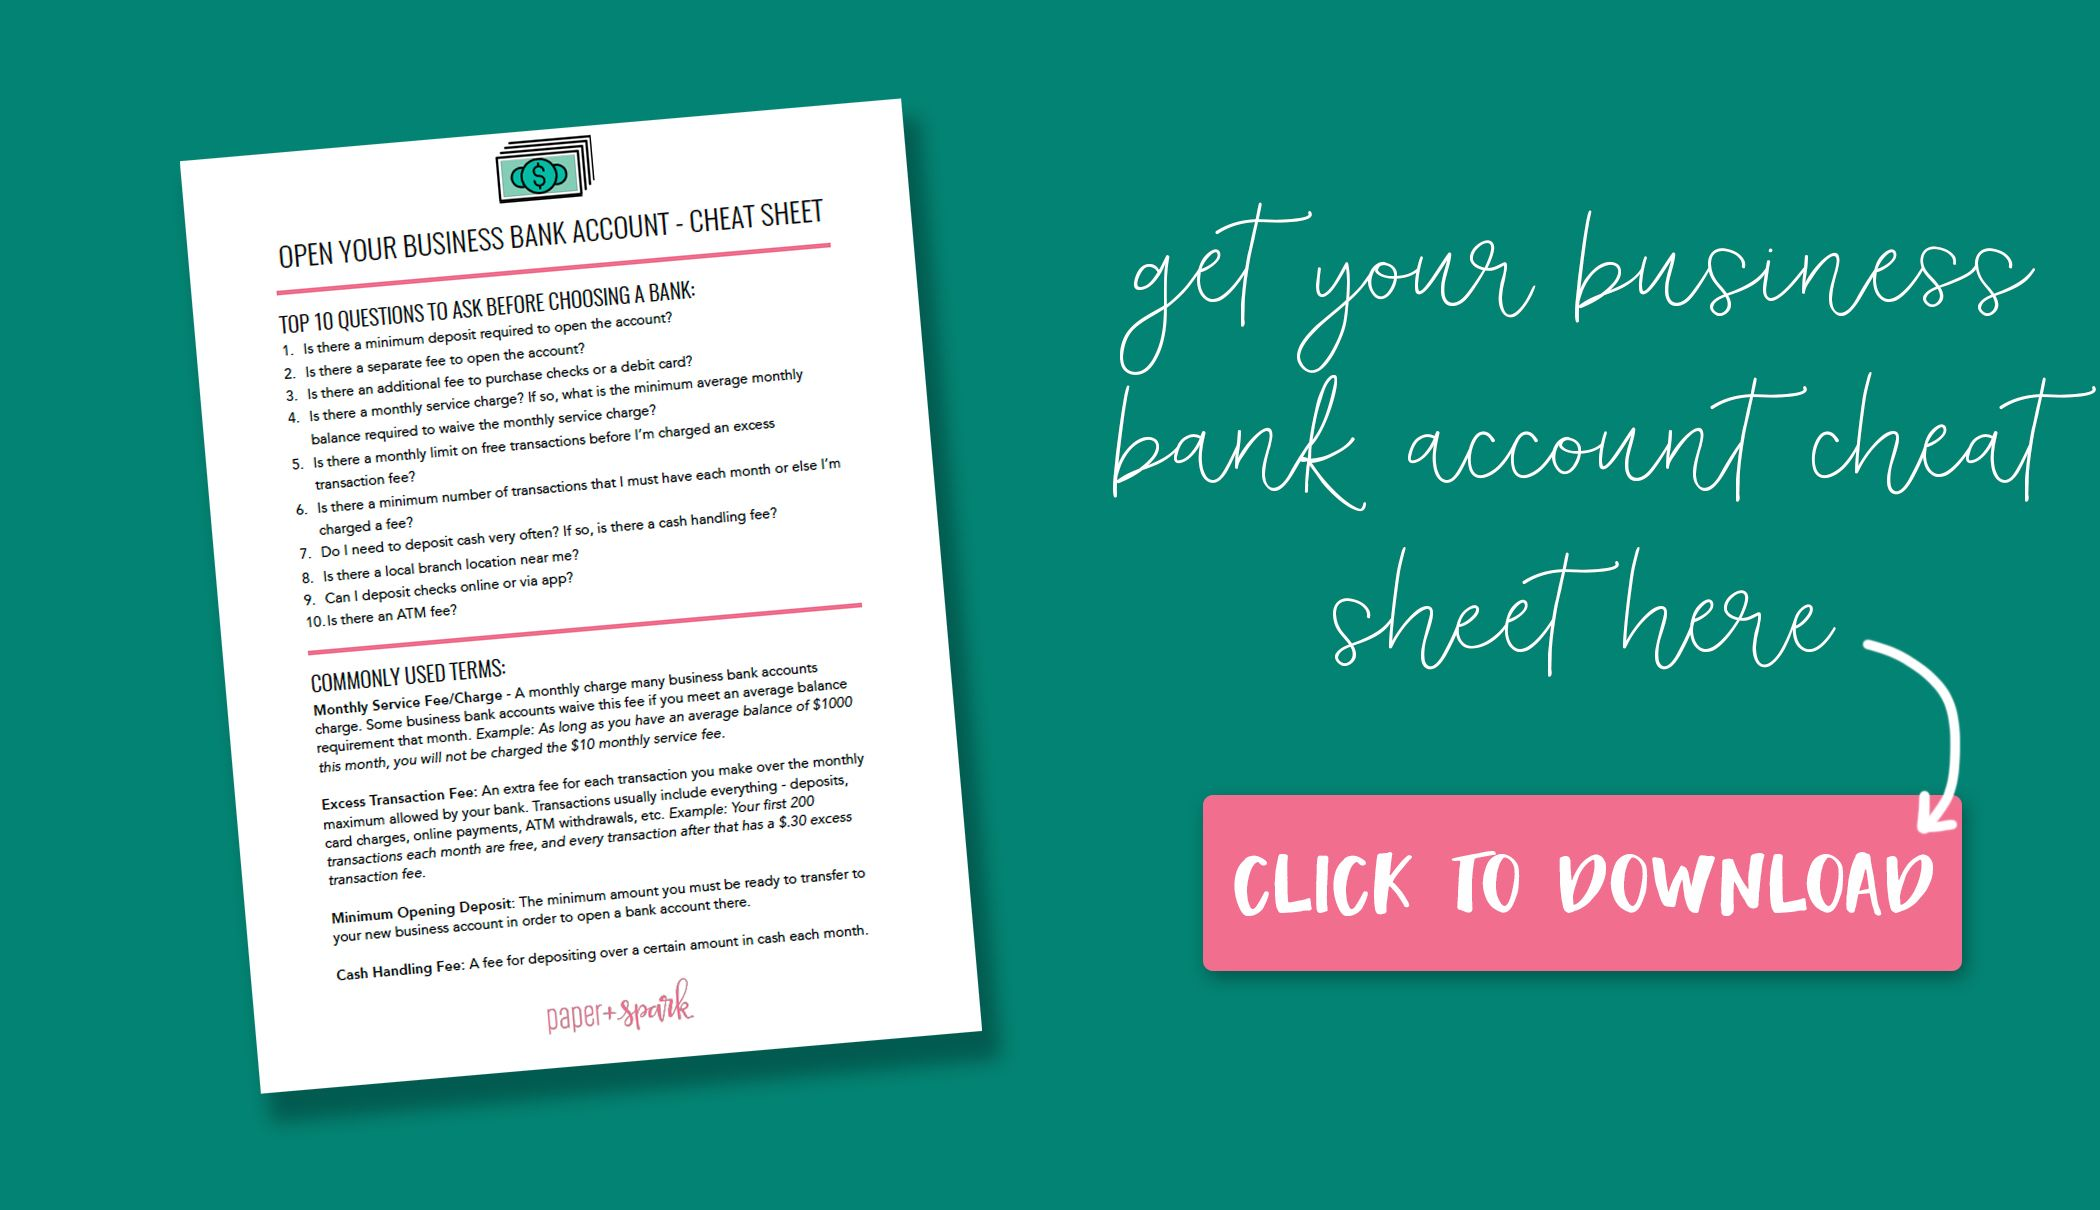 Does your biz need it's own bank account? Business bank